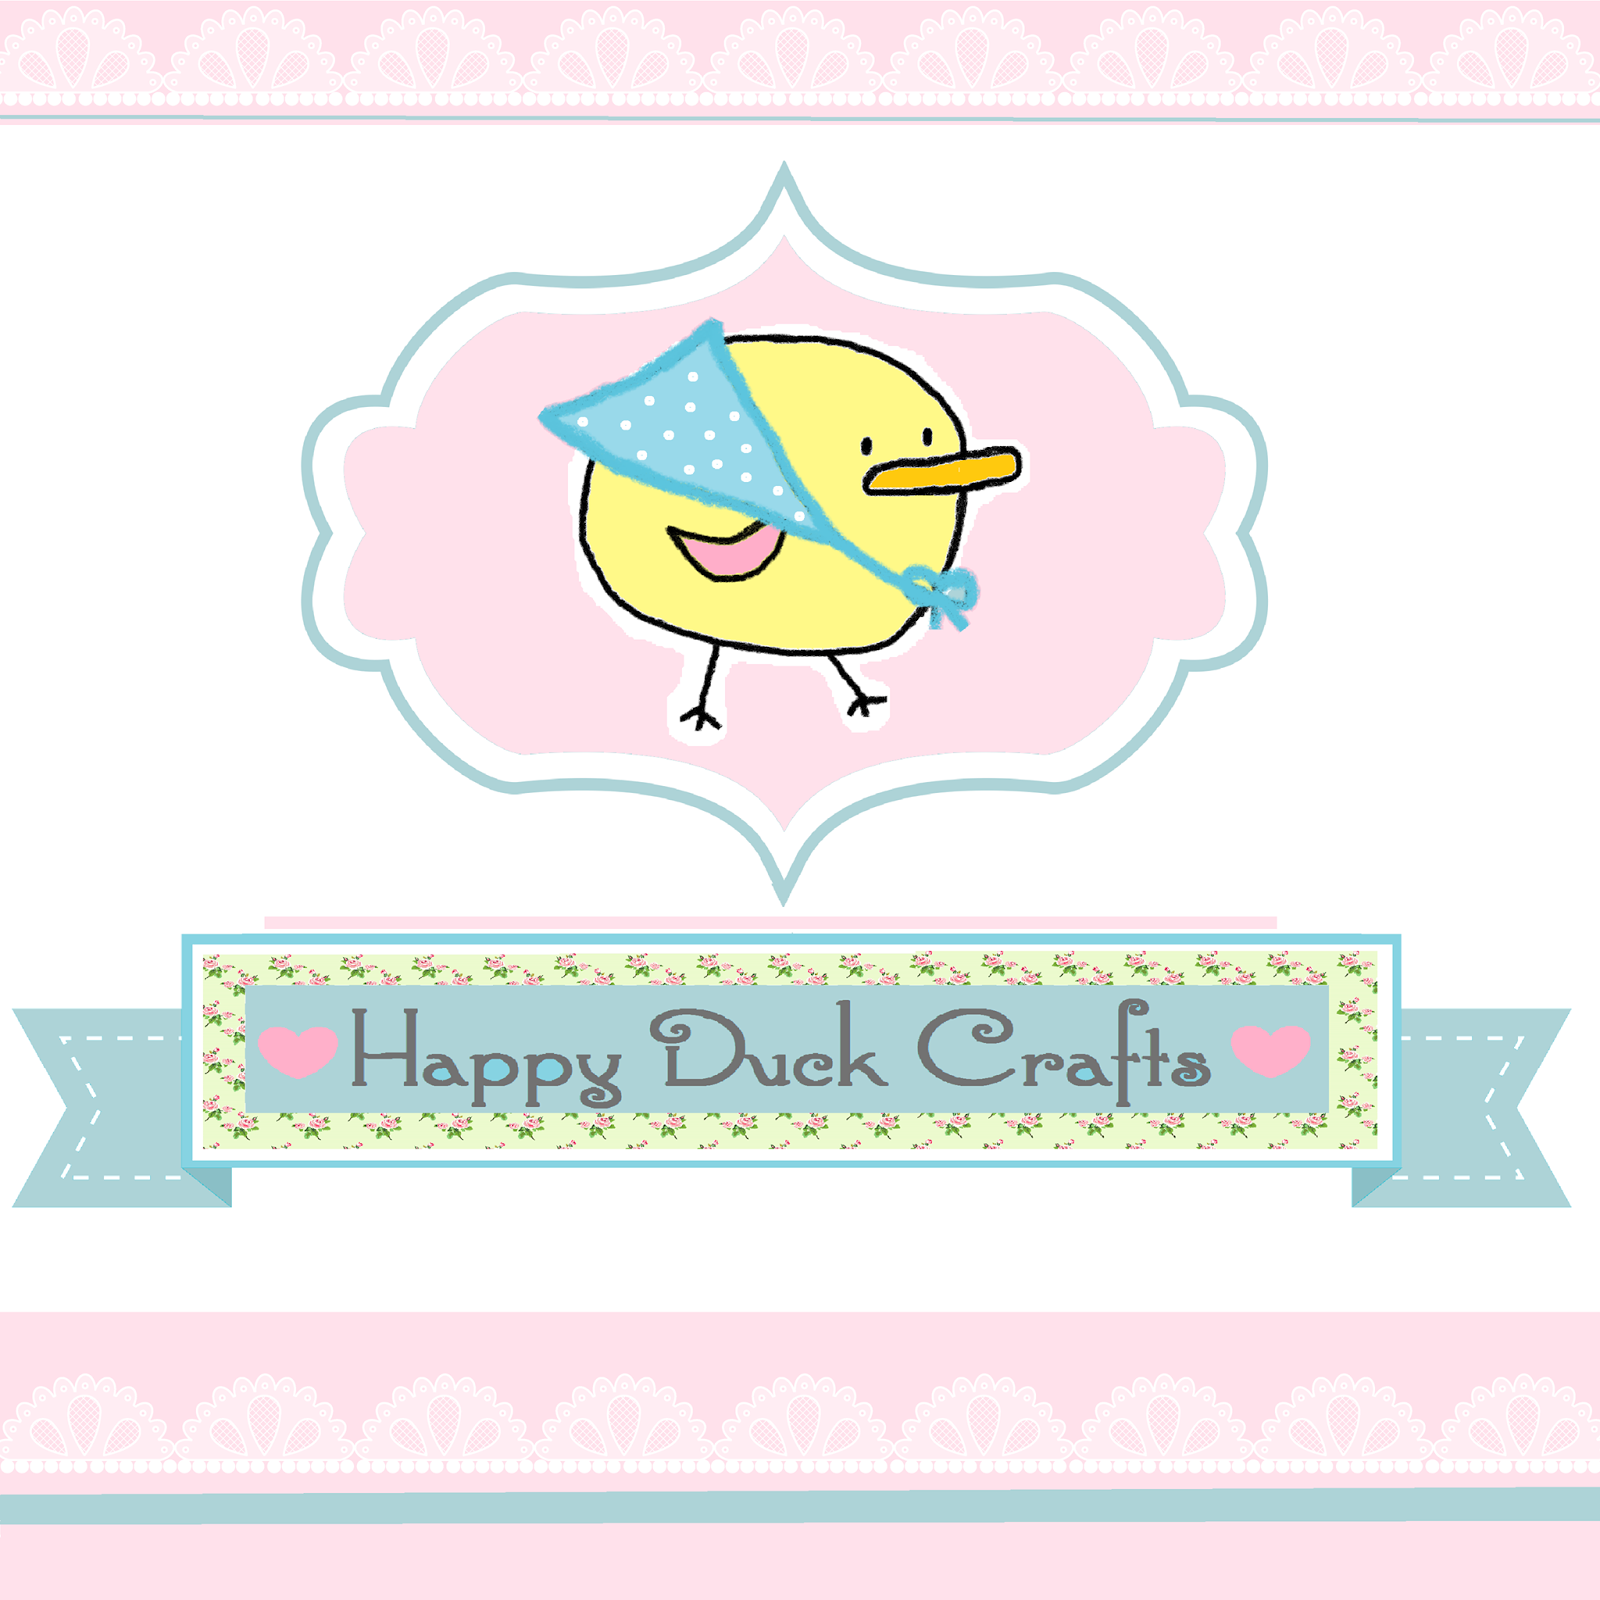 Happy Duck Crafts